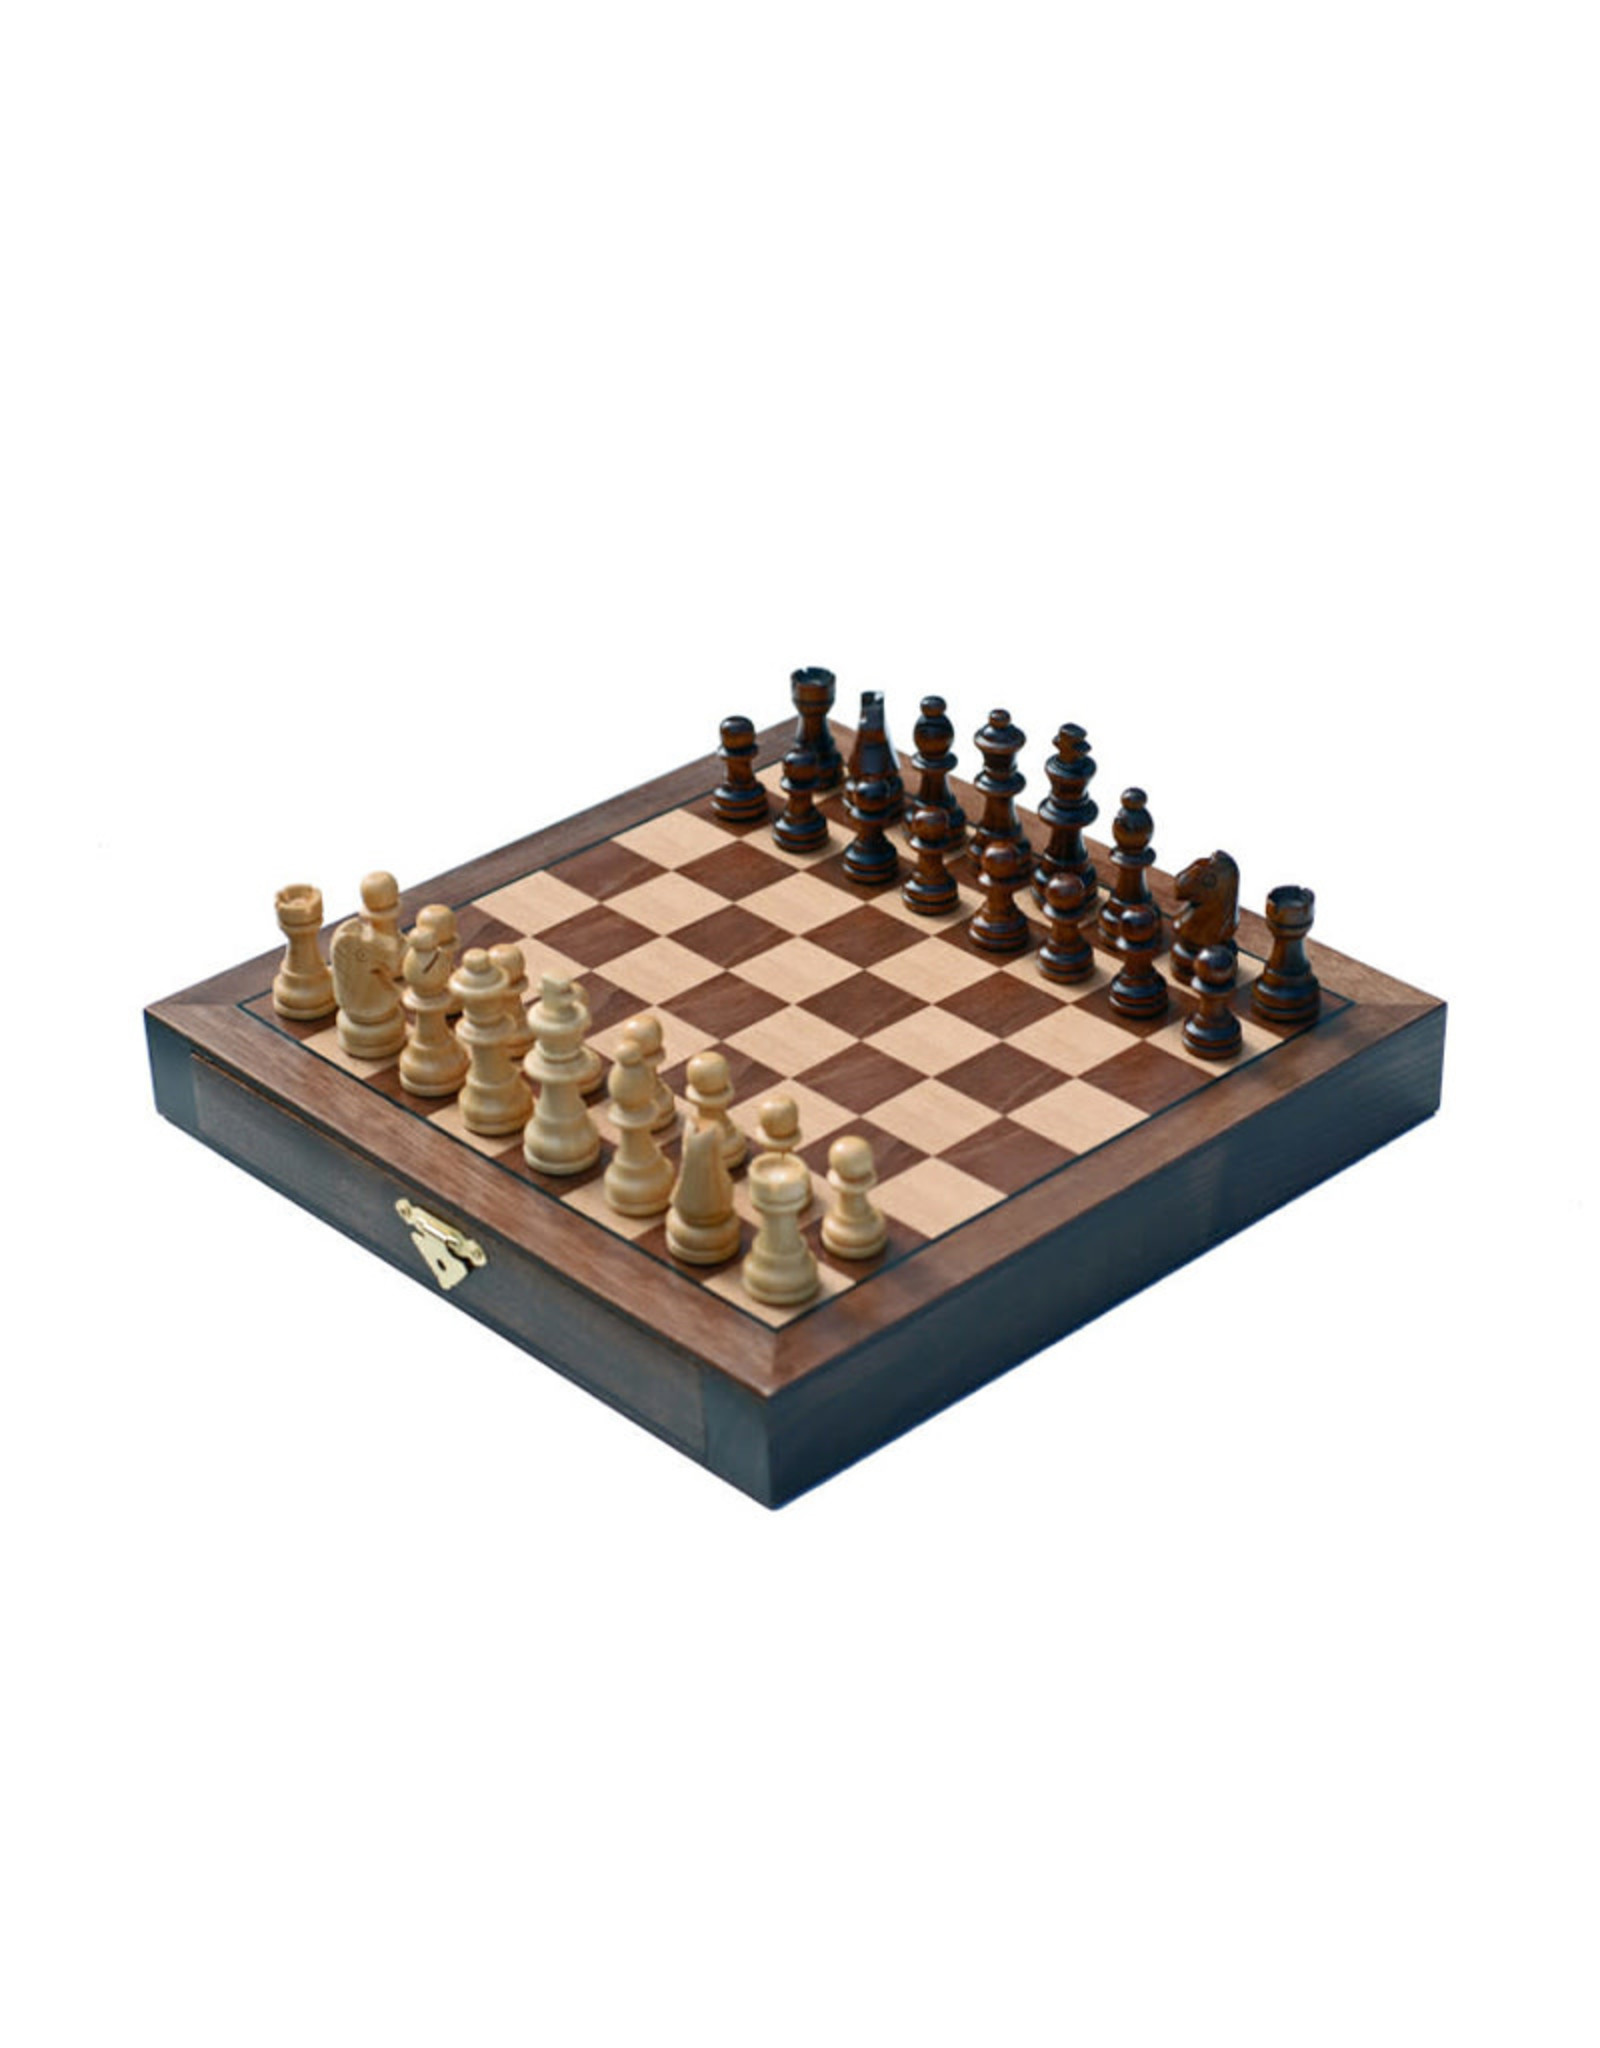 Travel Chess Set: 10 Inch Walnut Wooden Board with Drawers